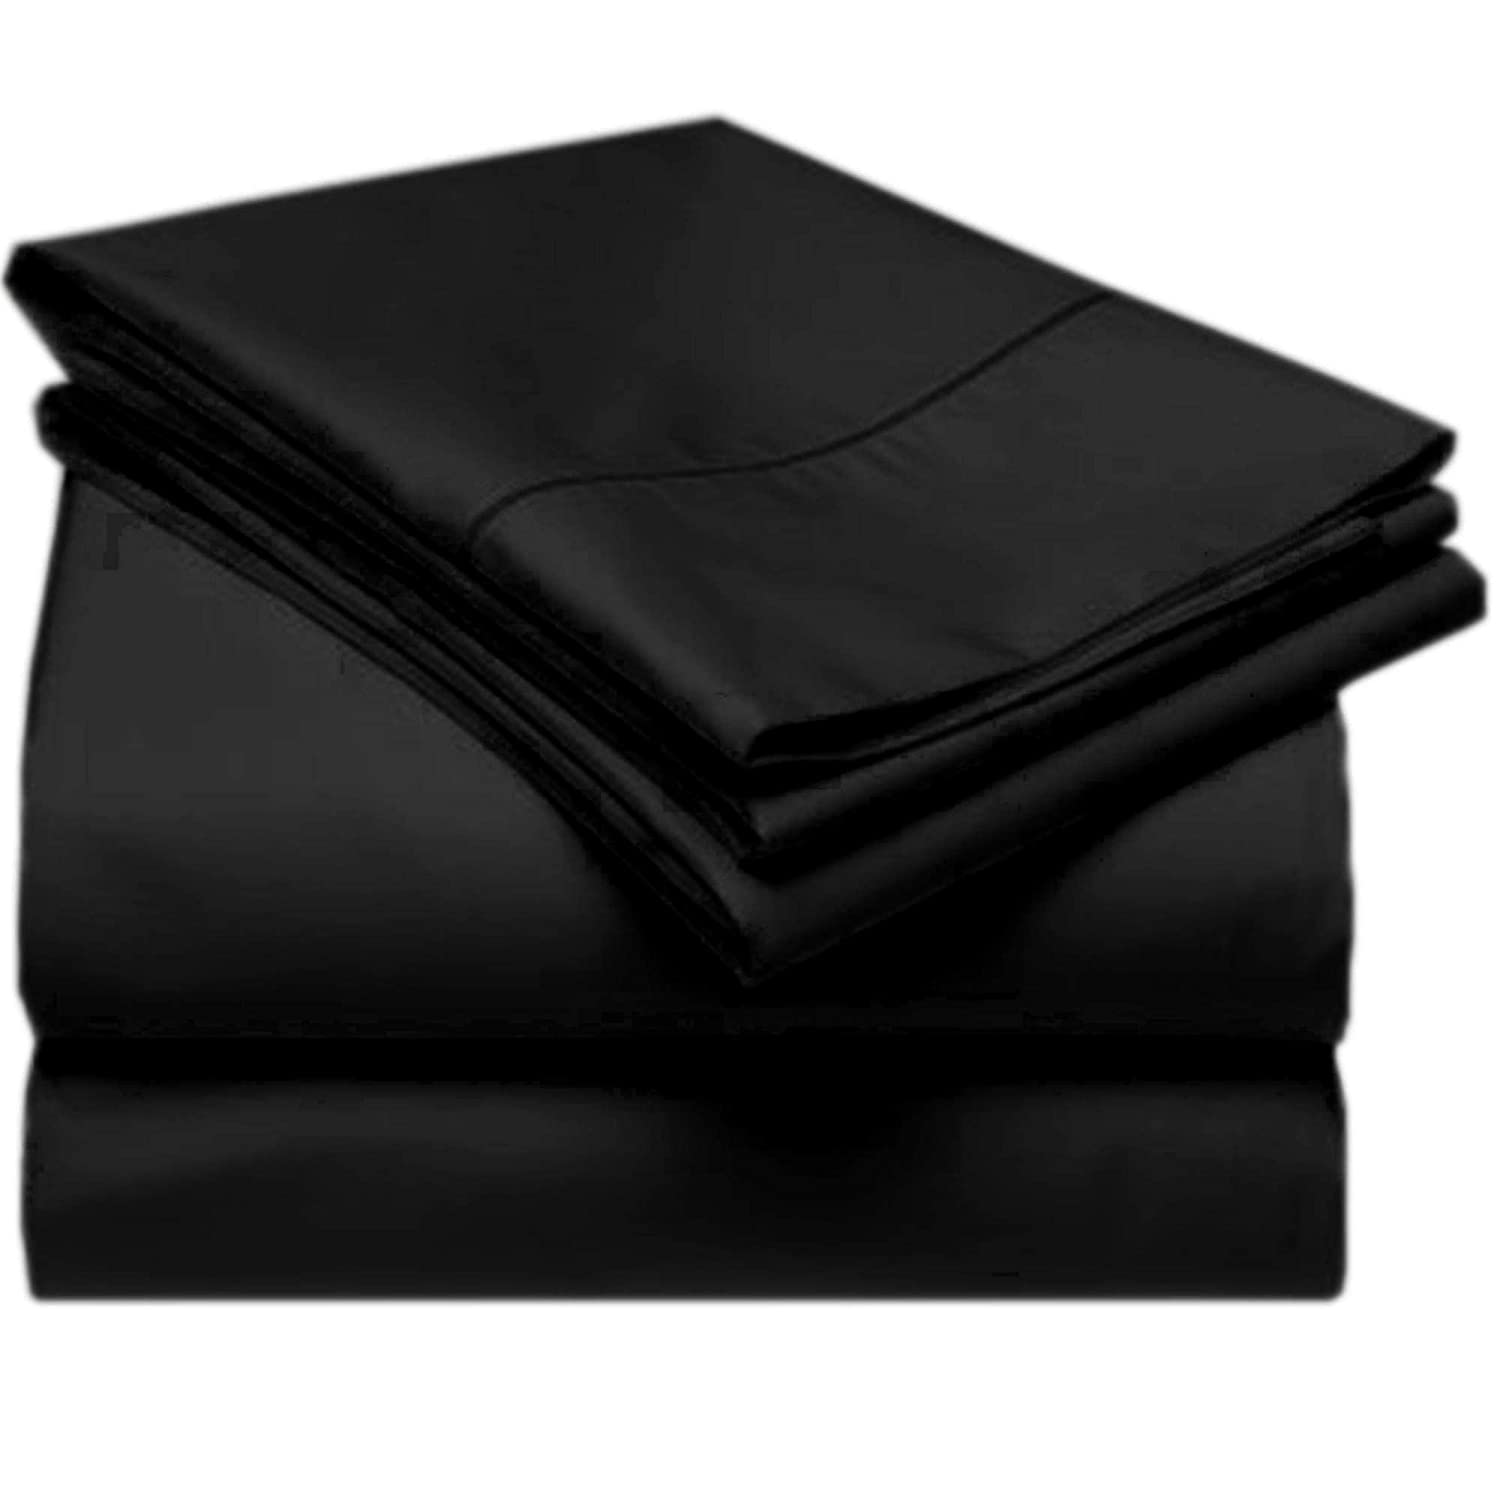 Ramano Collections 6 Piece Soft, Wrinkle Resistant & Double Brushed, Bamboo Microfibre Blend Sheet Set (2 Extra Pillow Case) - Black, Double/Full Size